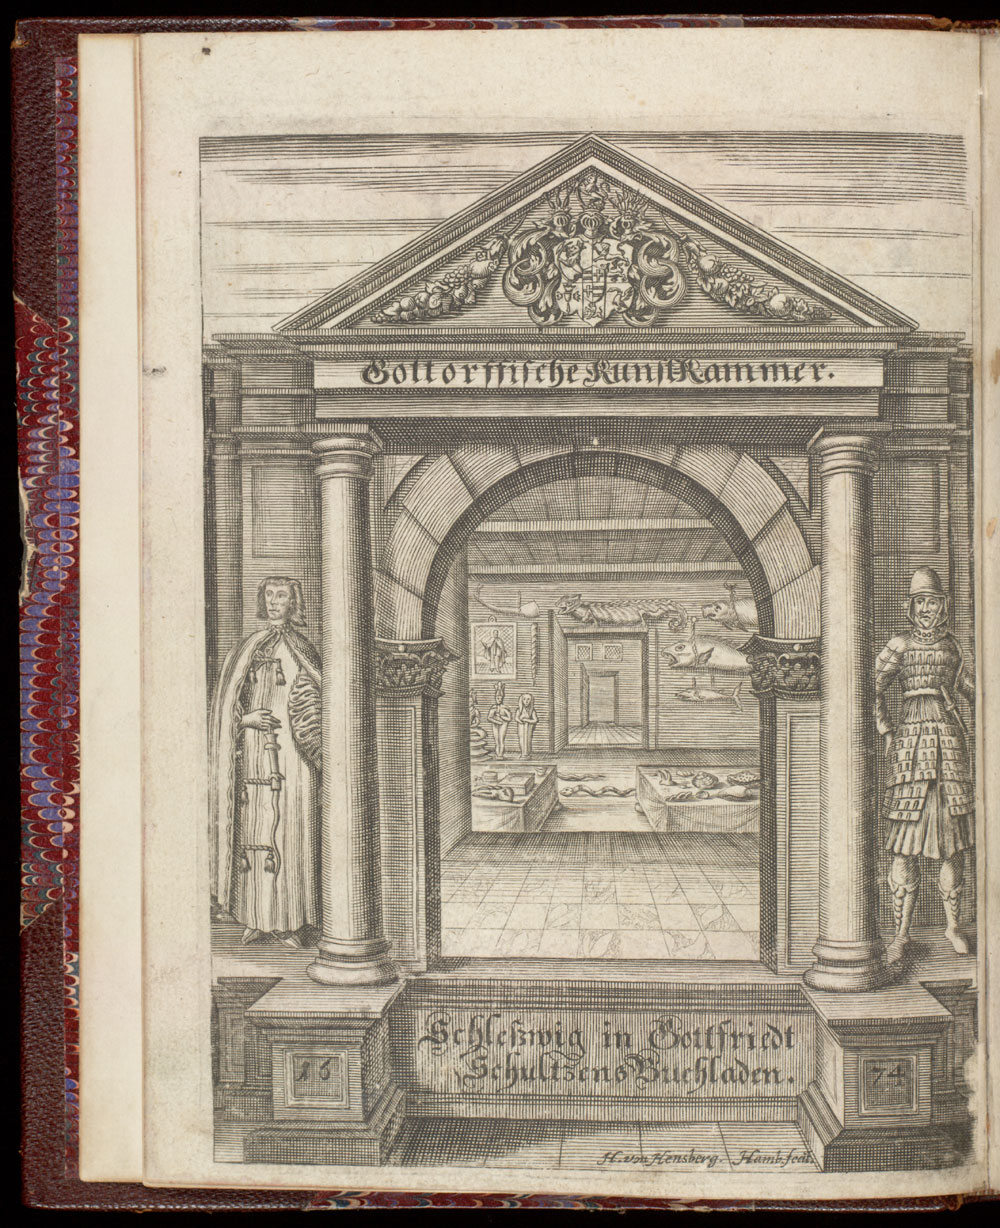 Frontispiece: Entrance to museum room,  Image number:SIL21-19-001